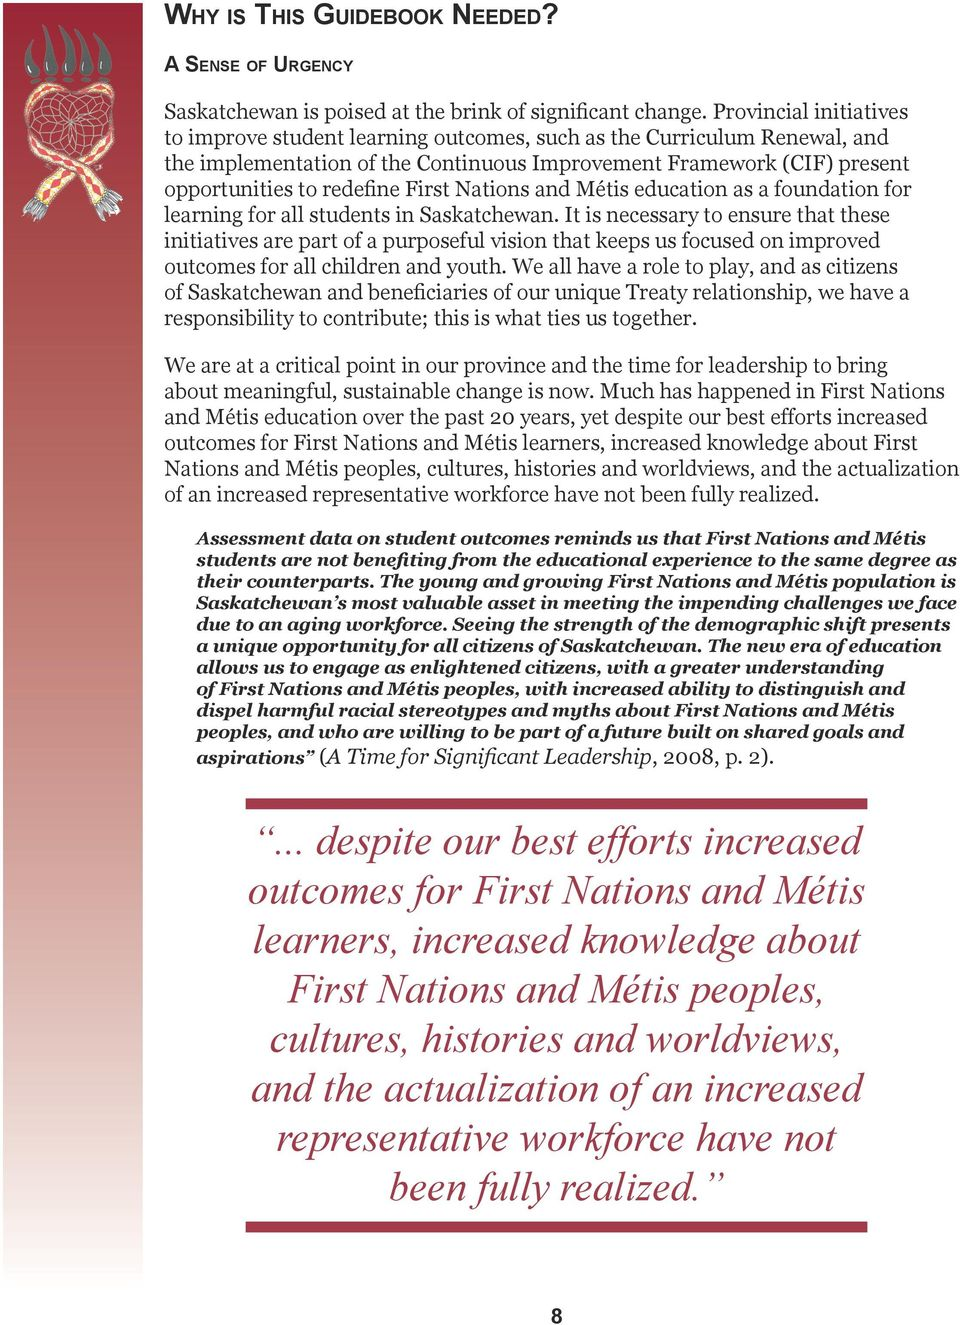 First Nations and Métis education as a foundation for learning for all students in Saskatchewan.